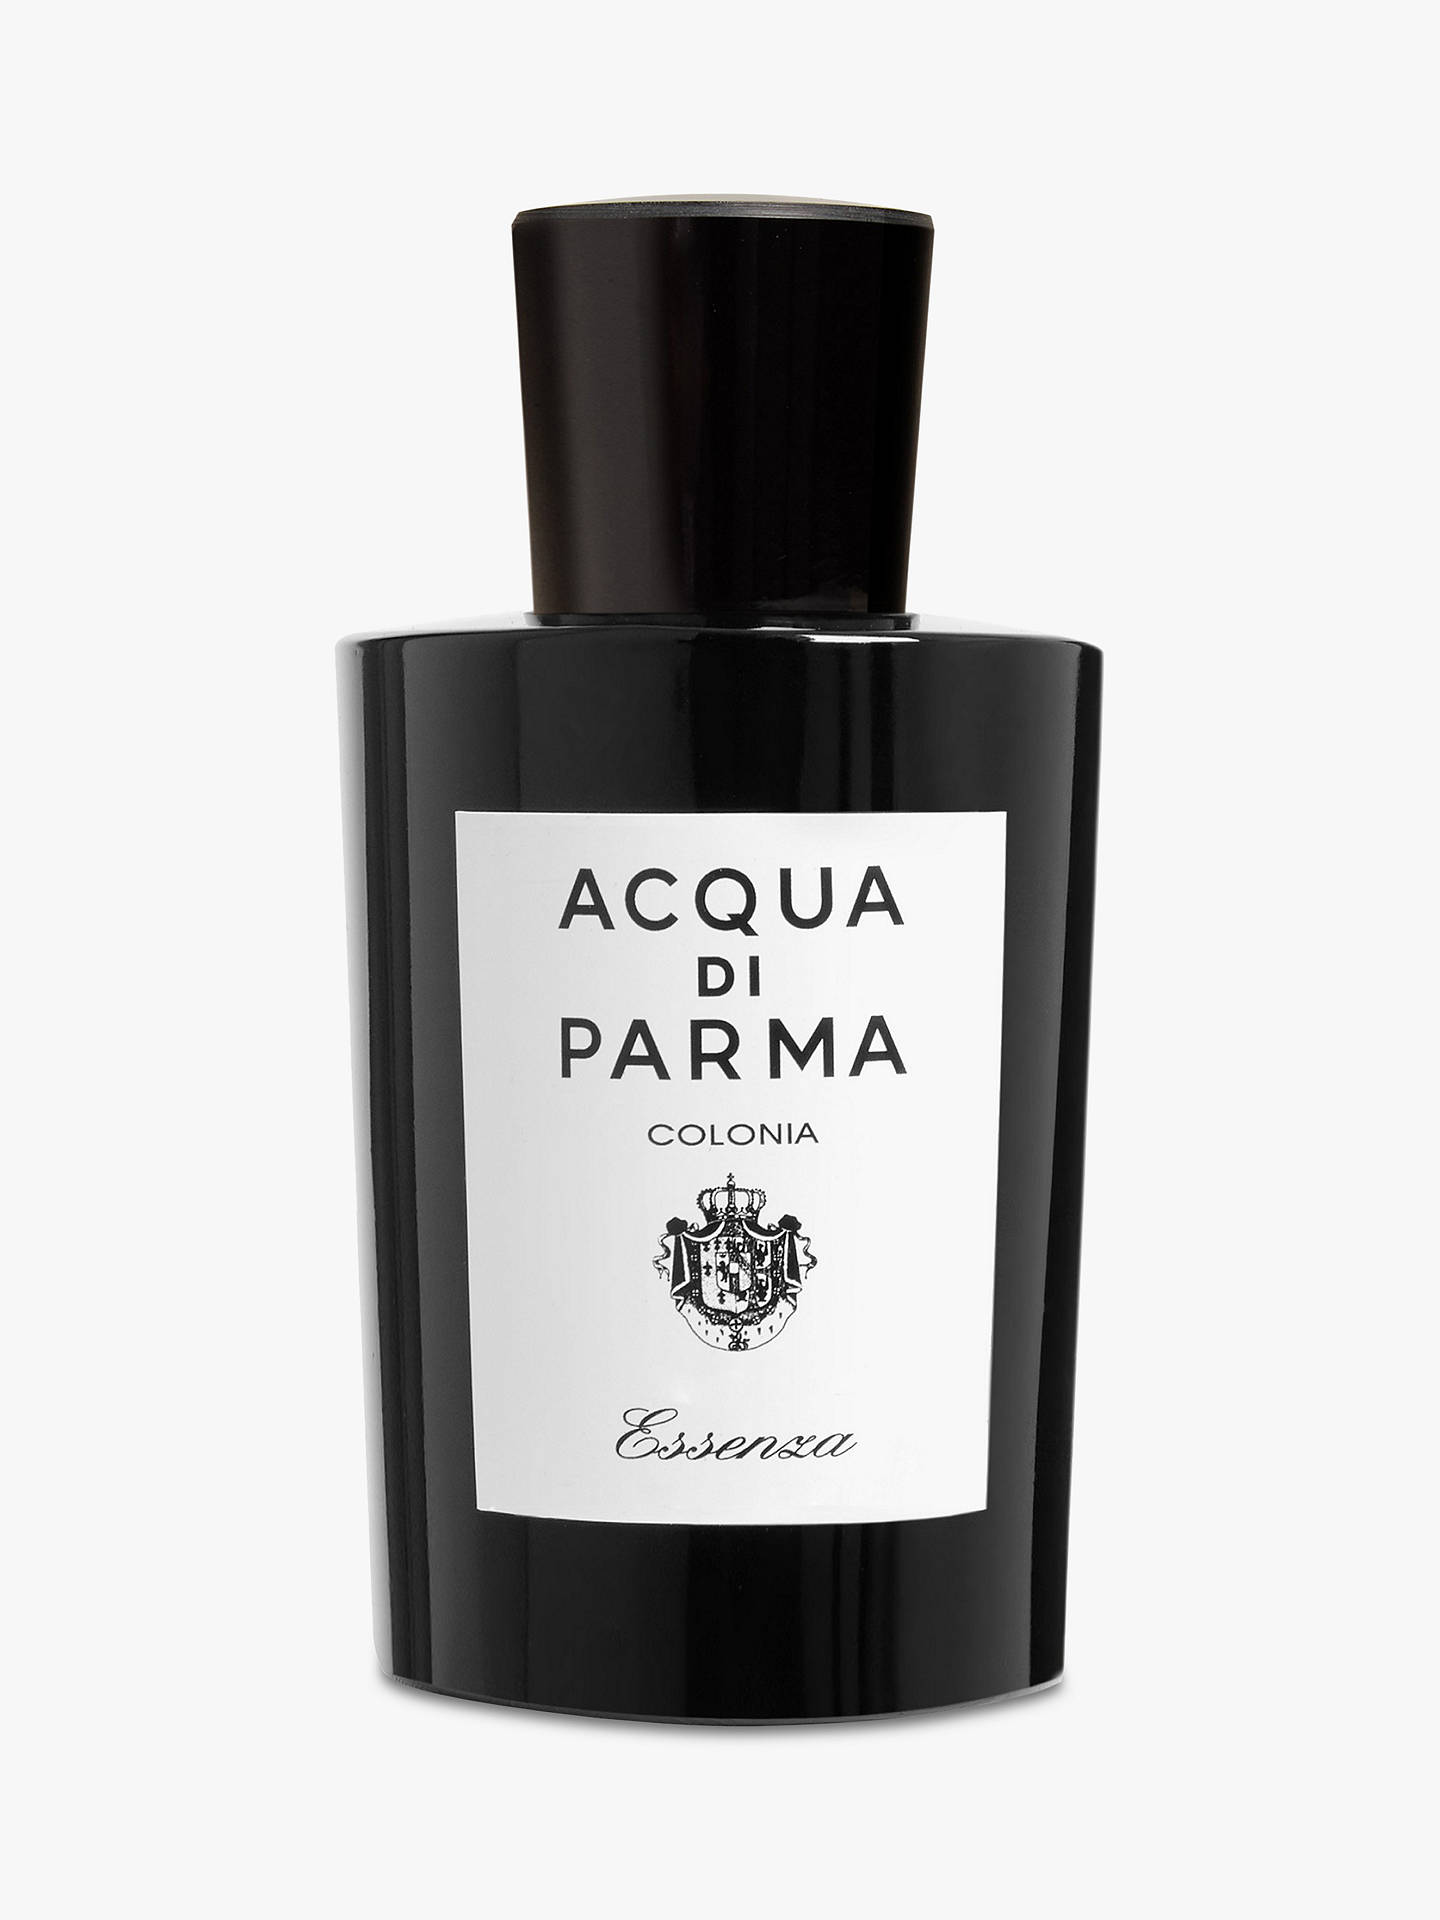 Buy Acqua di Parma Colonia Essenza, 100ml Online at johnlewis.com